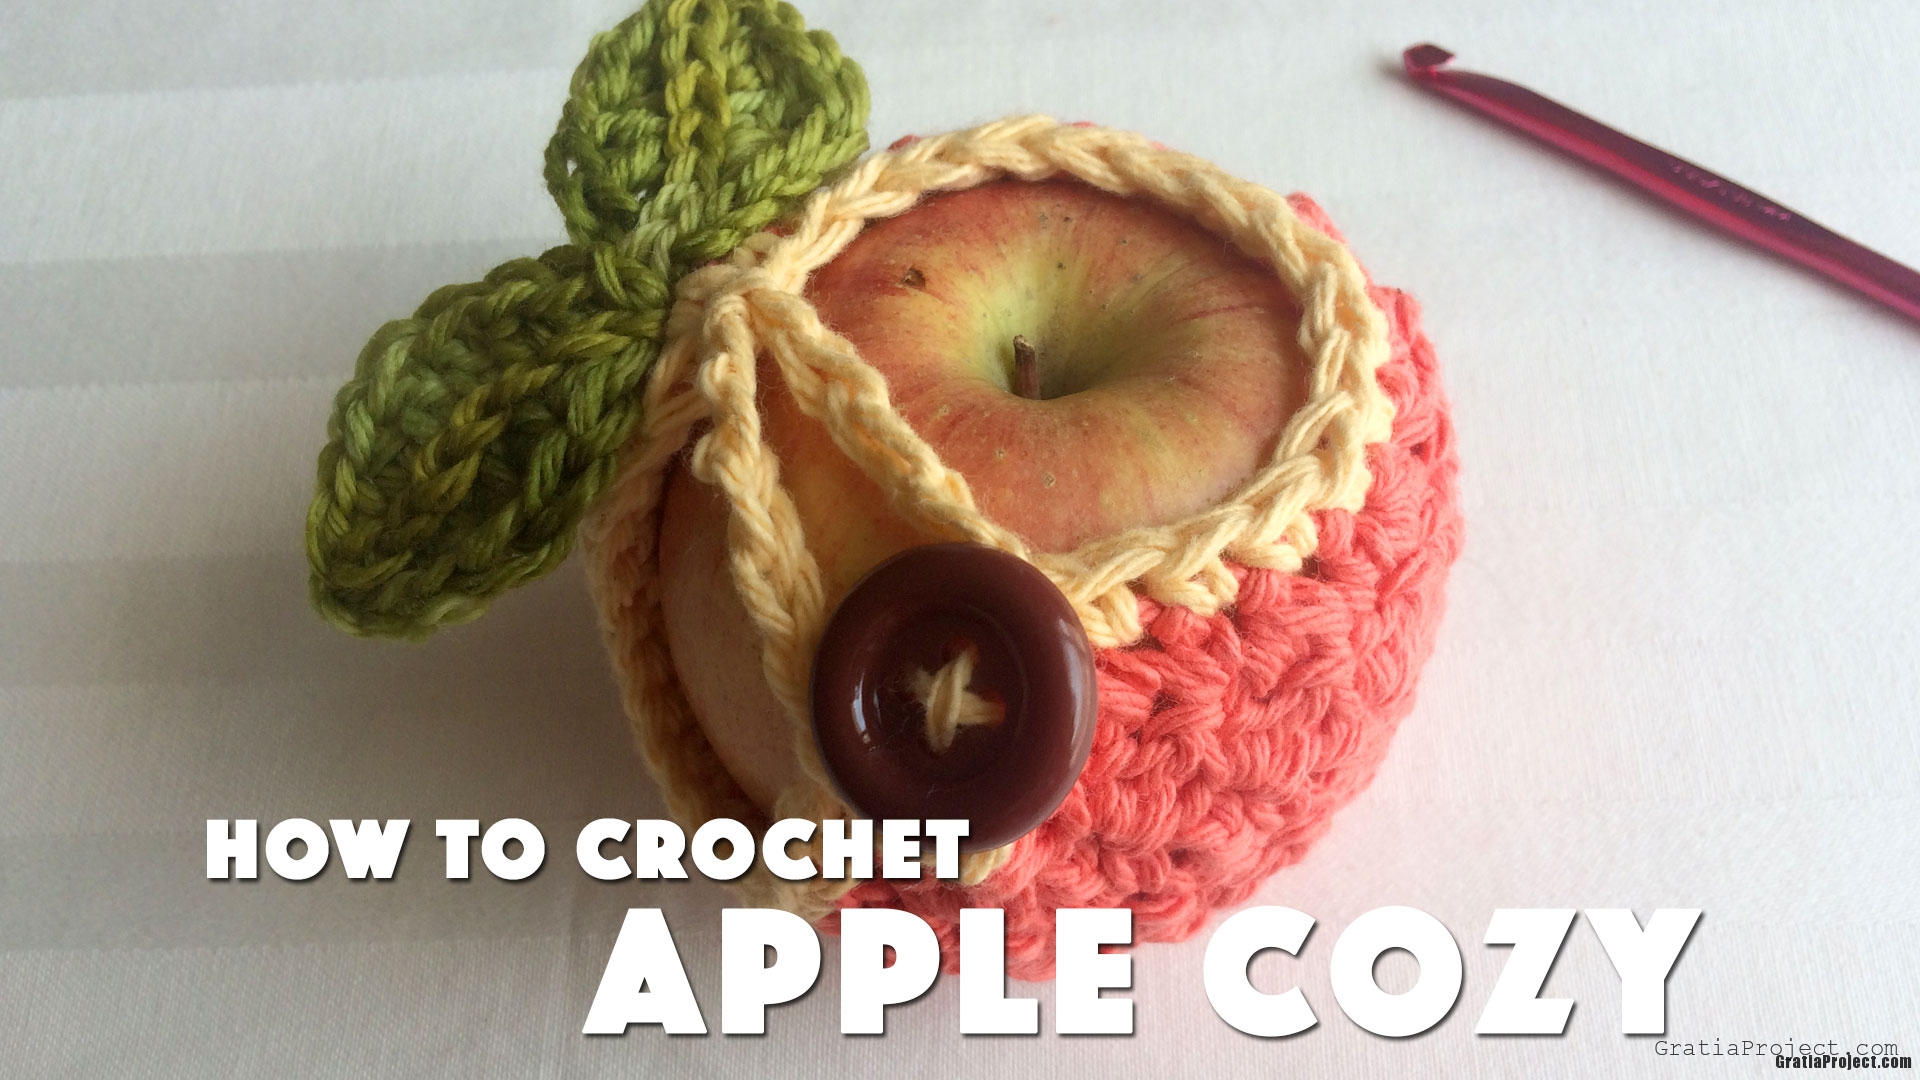 how-to-crochet-apple-cozy